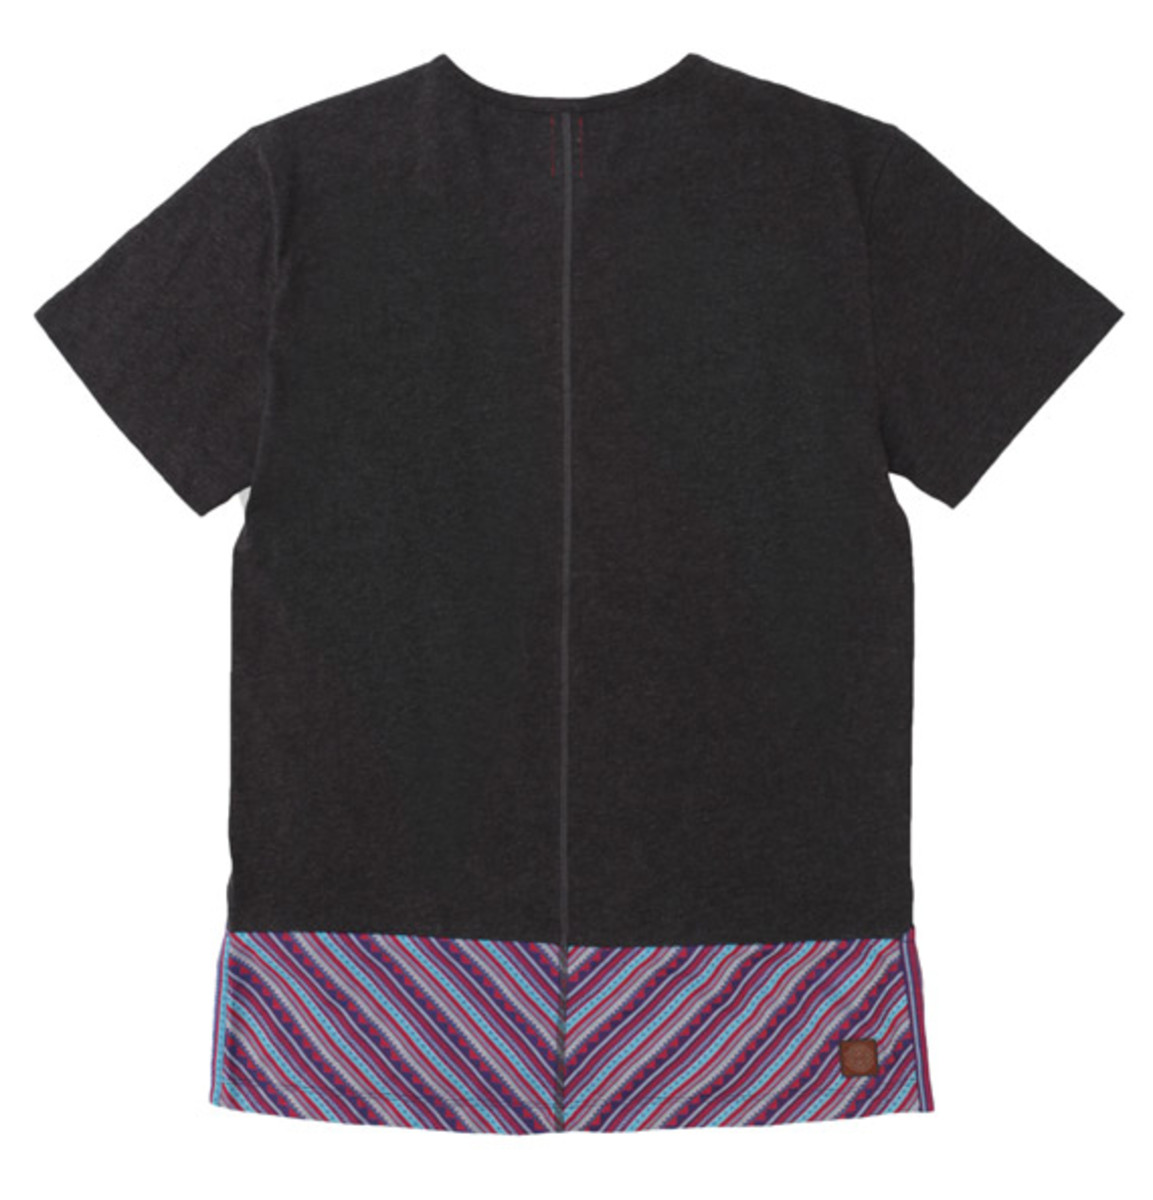 clot-tribesmen-fall-winter-2012-collection-series-2-tops-23